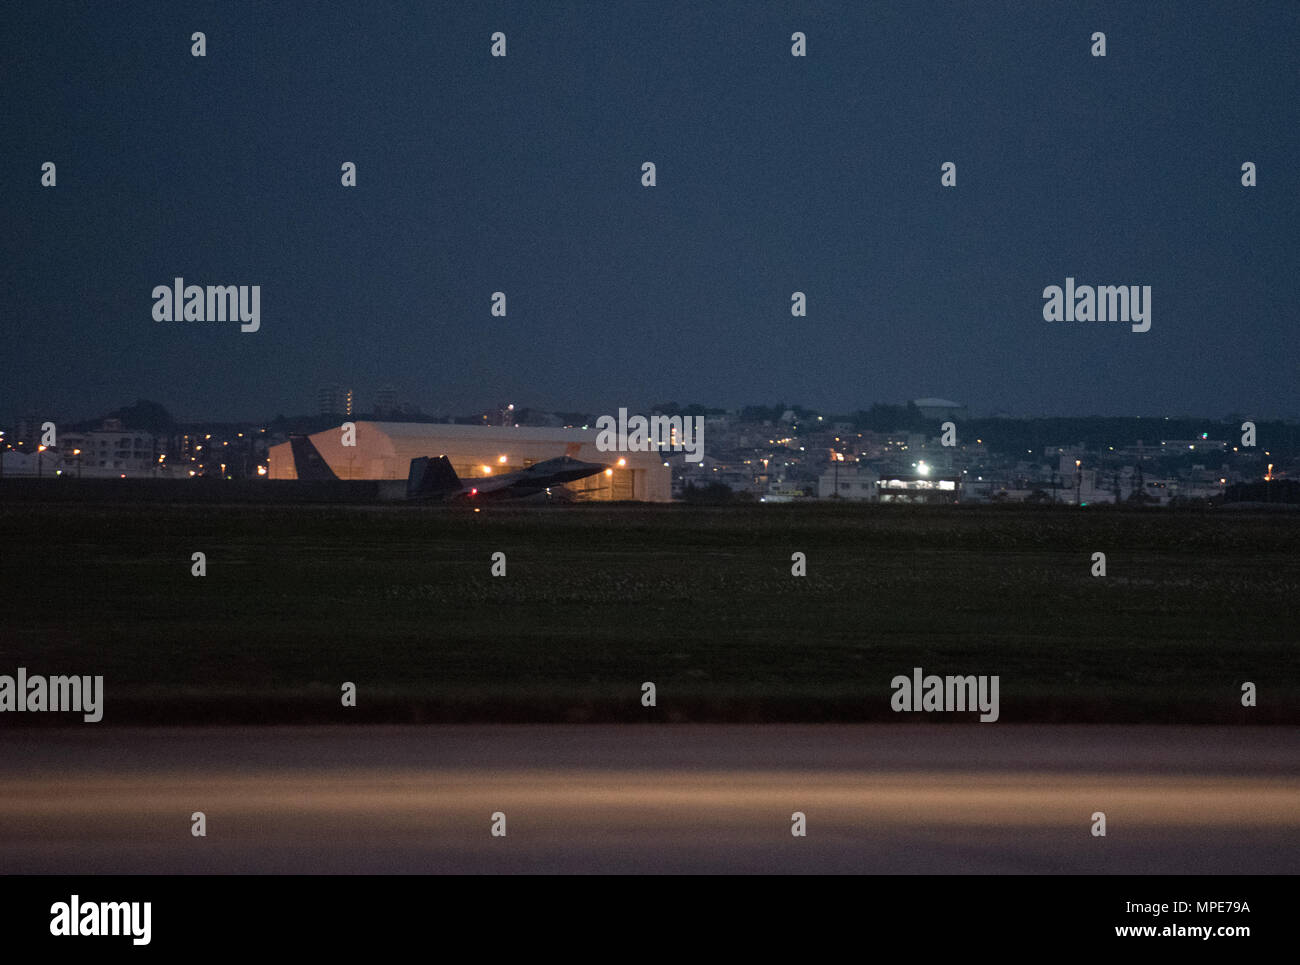 U.S. Air Force F-22 Raptors from the 90th Fighter Squadron arrive at Kadena Air Base, Japan, Feb. 7, 2017, before traveling on to Royal Australian Air Force Base, Tindal. The U.S. Air Force and the RAAF train together as part of the U.S. and Australian Enhanced Air Cooperation Agreement. Enhanced air cooperation increases both the U.S. and Australia's combined capabilities, improving security and stability throughout the Indo-Asia-Pacific region. (U.S. Air Force photo by Senior Airman Omari Bernard/Released) - Stock Image